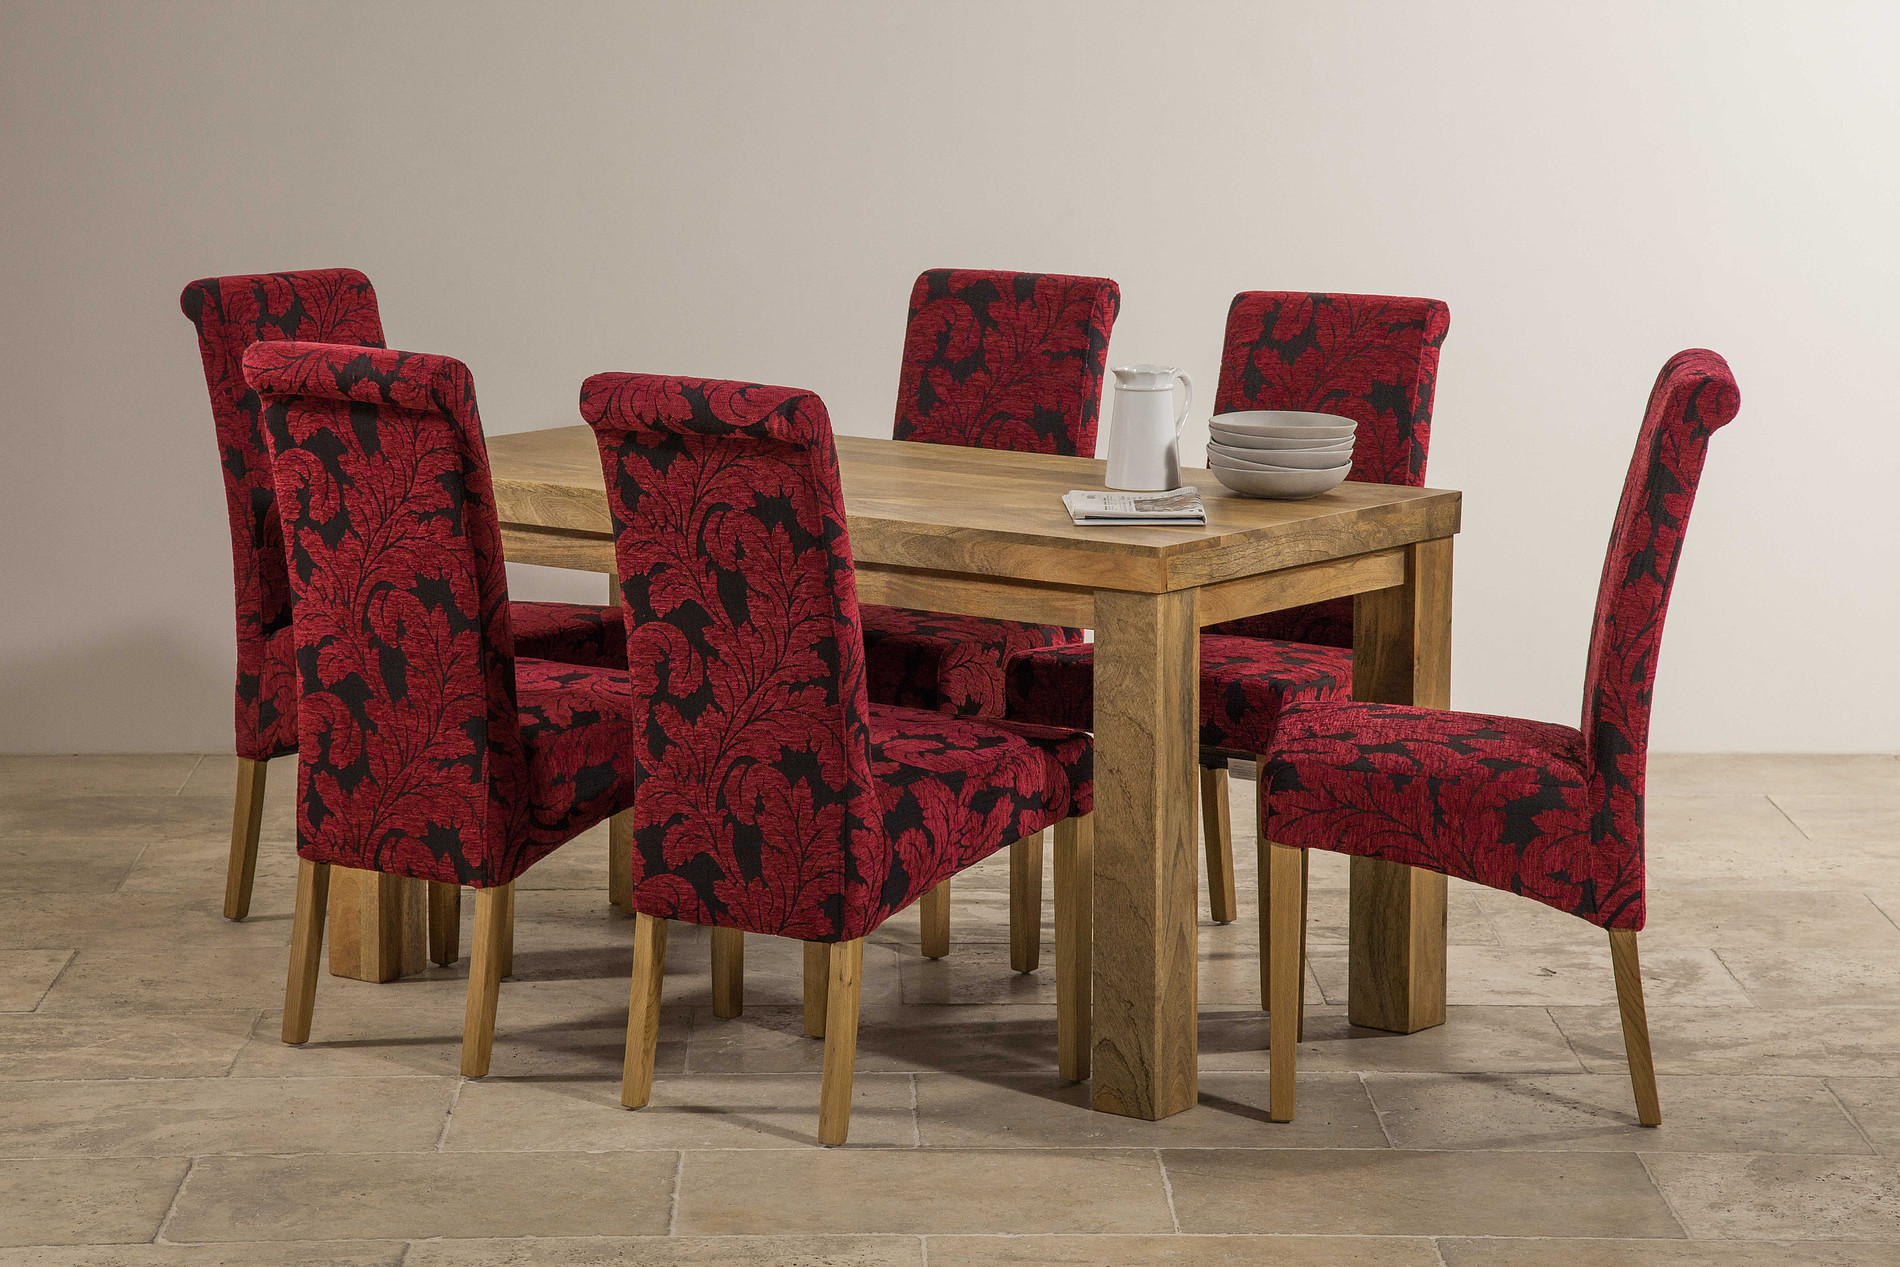 Mantis Light Solid Mango 5ft x 2ft 6quot Dining Table 6  : mantis light solid mango 5ft x 2ft 6 dining table 6 scroll back dining chair with oak legs patterned aubergine fabric 5464985f70c6b from oakfurnitureland.co.uk size 1900 x 1267 jpeg 689kB